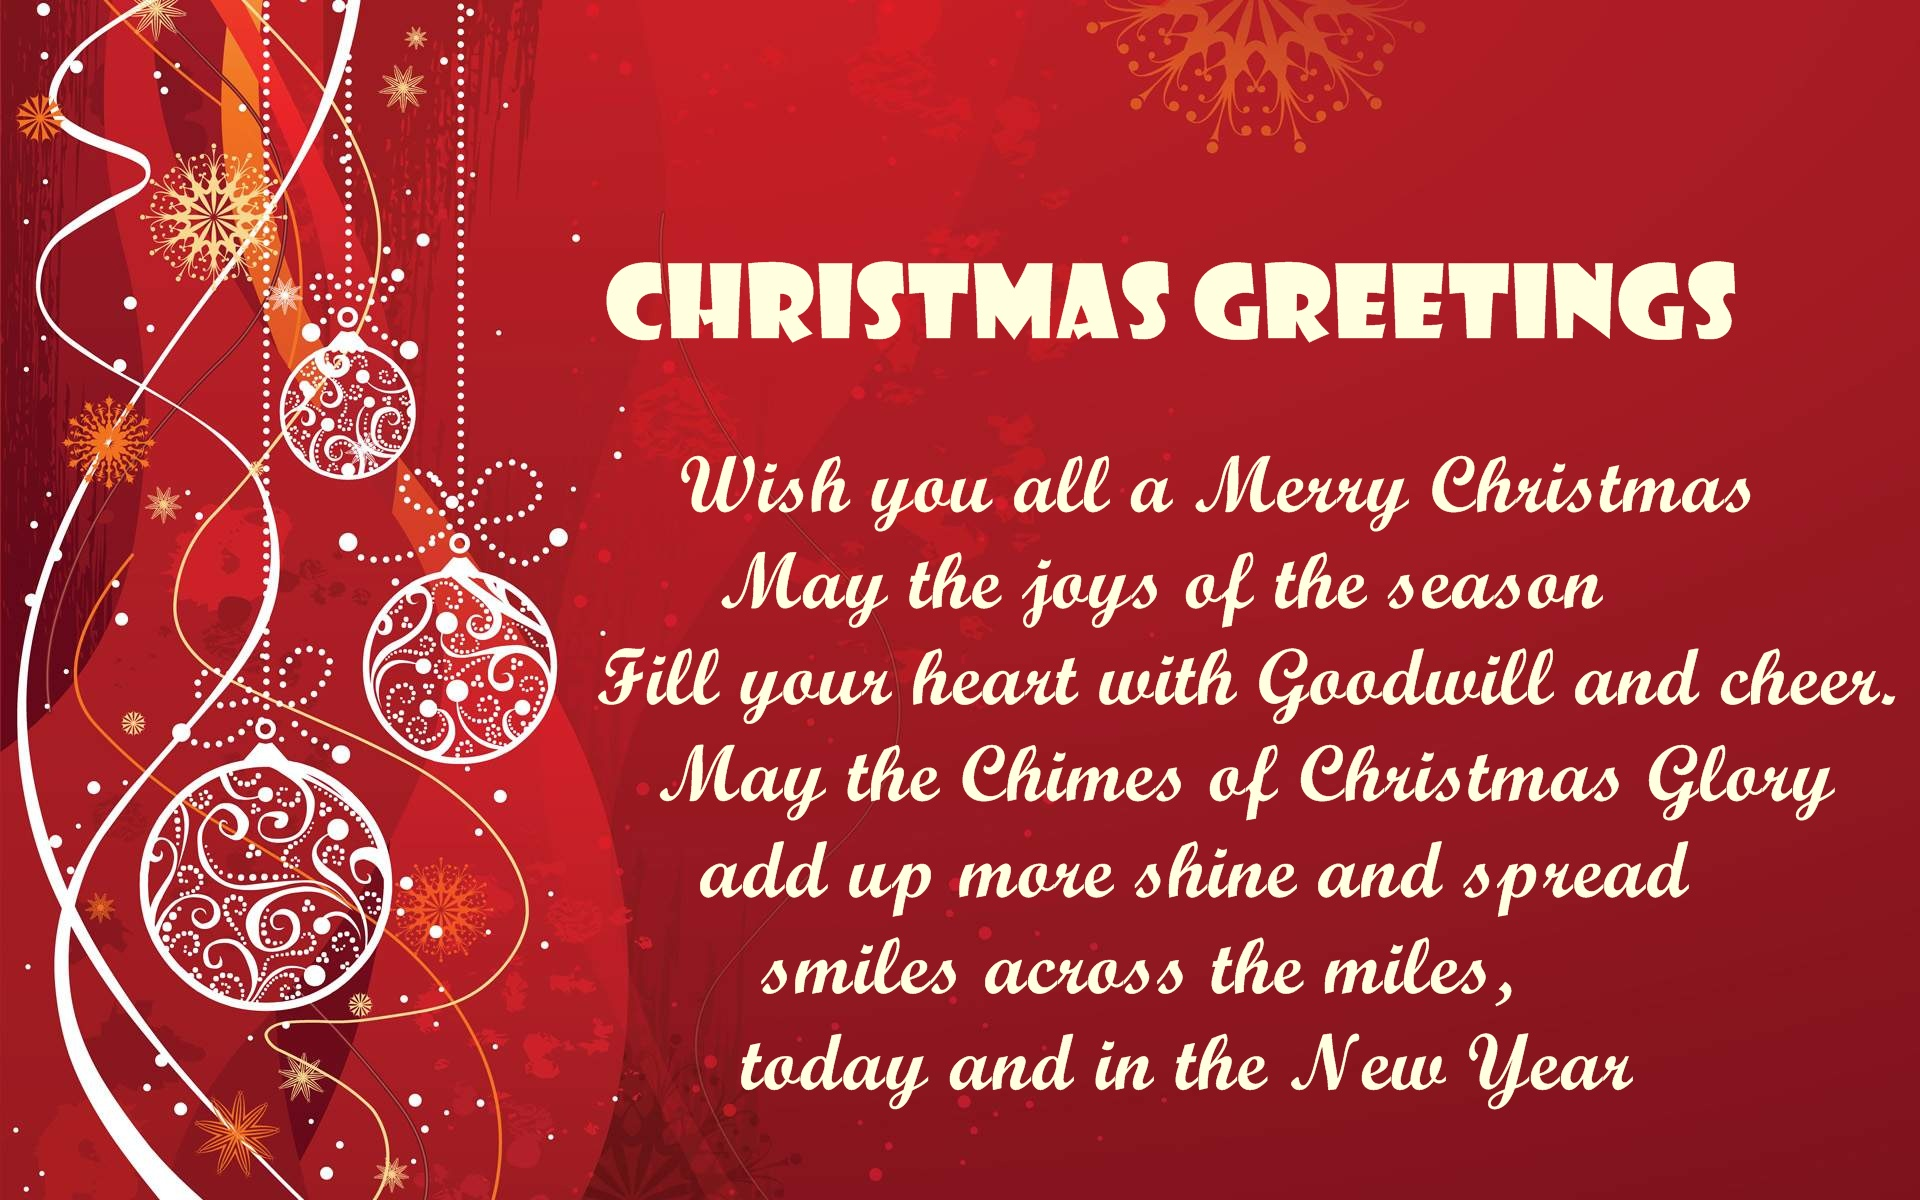 Christmas message to you and yours from Bulawayo24.com - Bulawayo24 News